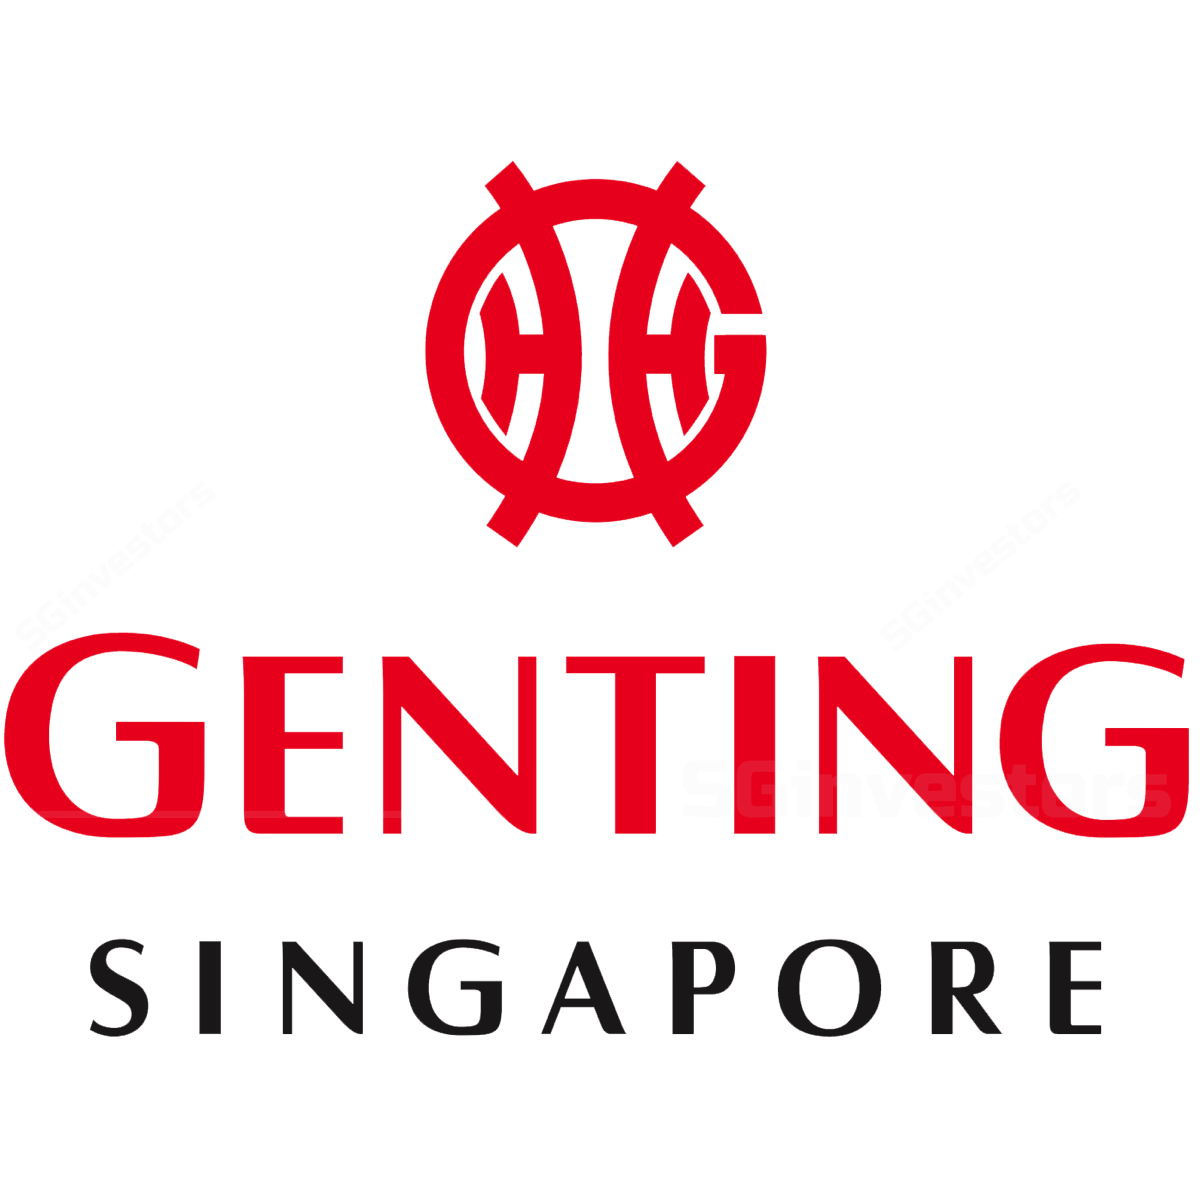 Genting Singapore - CIMB Research 2018-04-05: Better Casino Odds Now